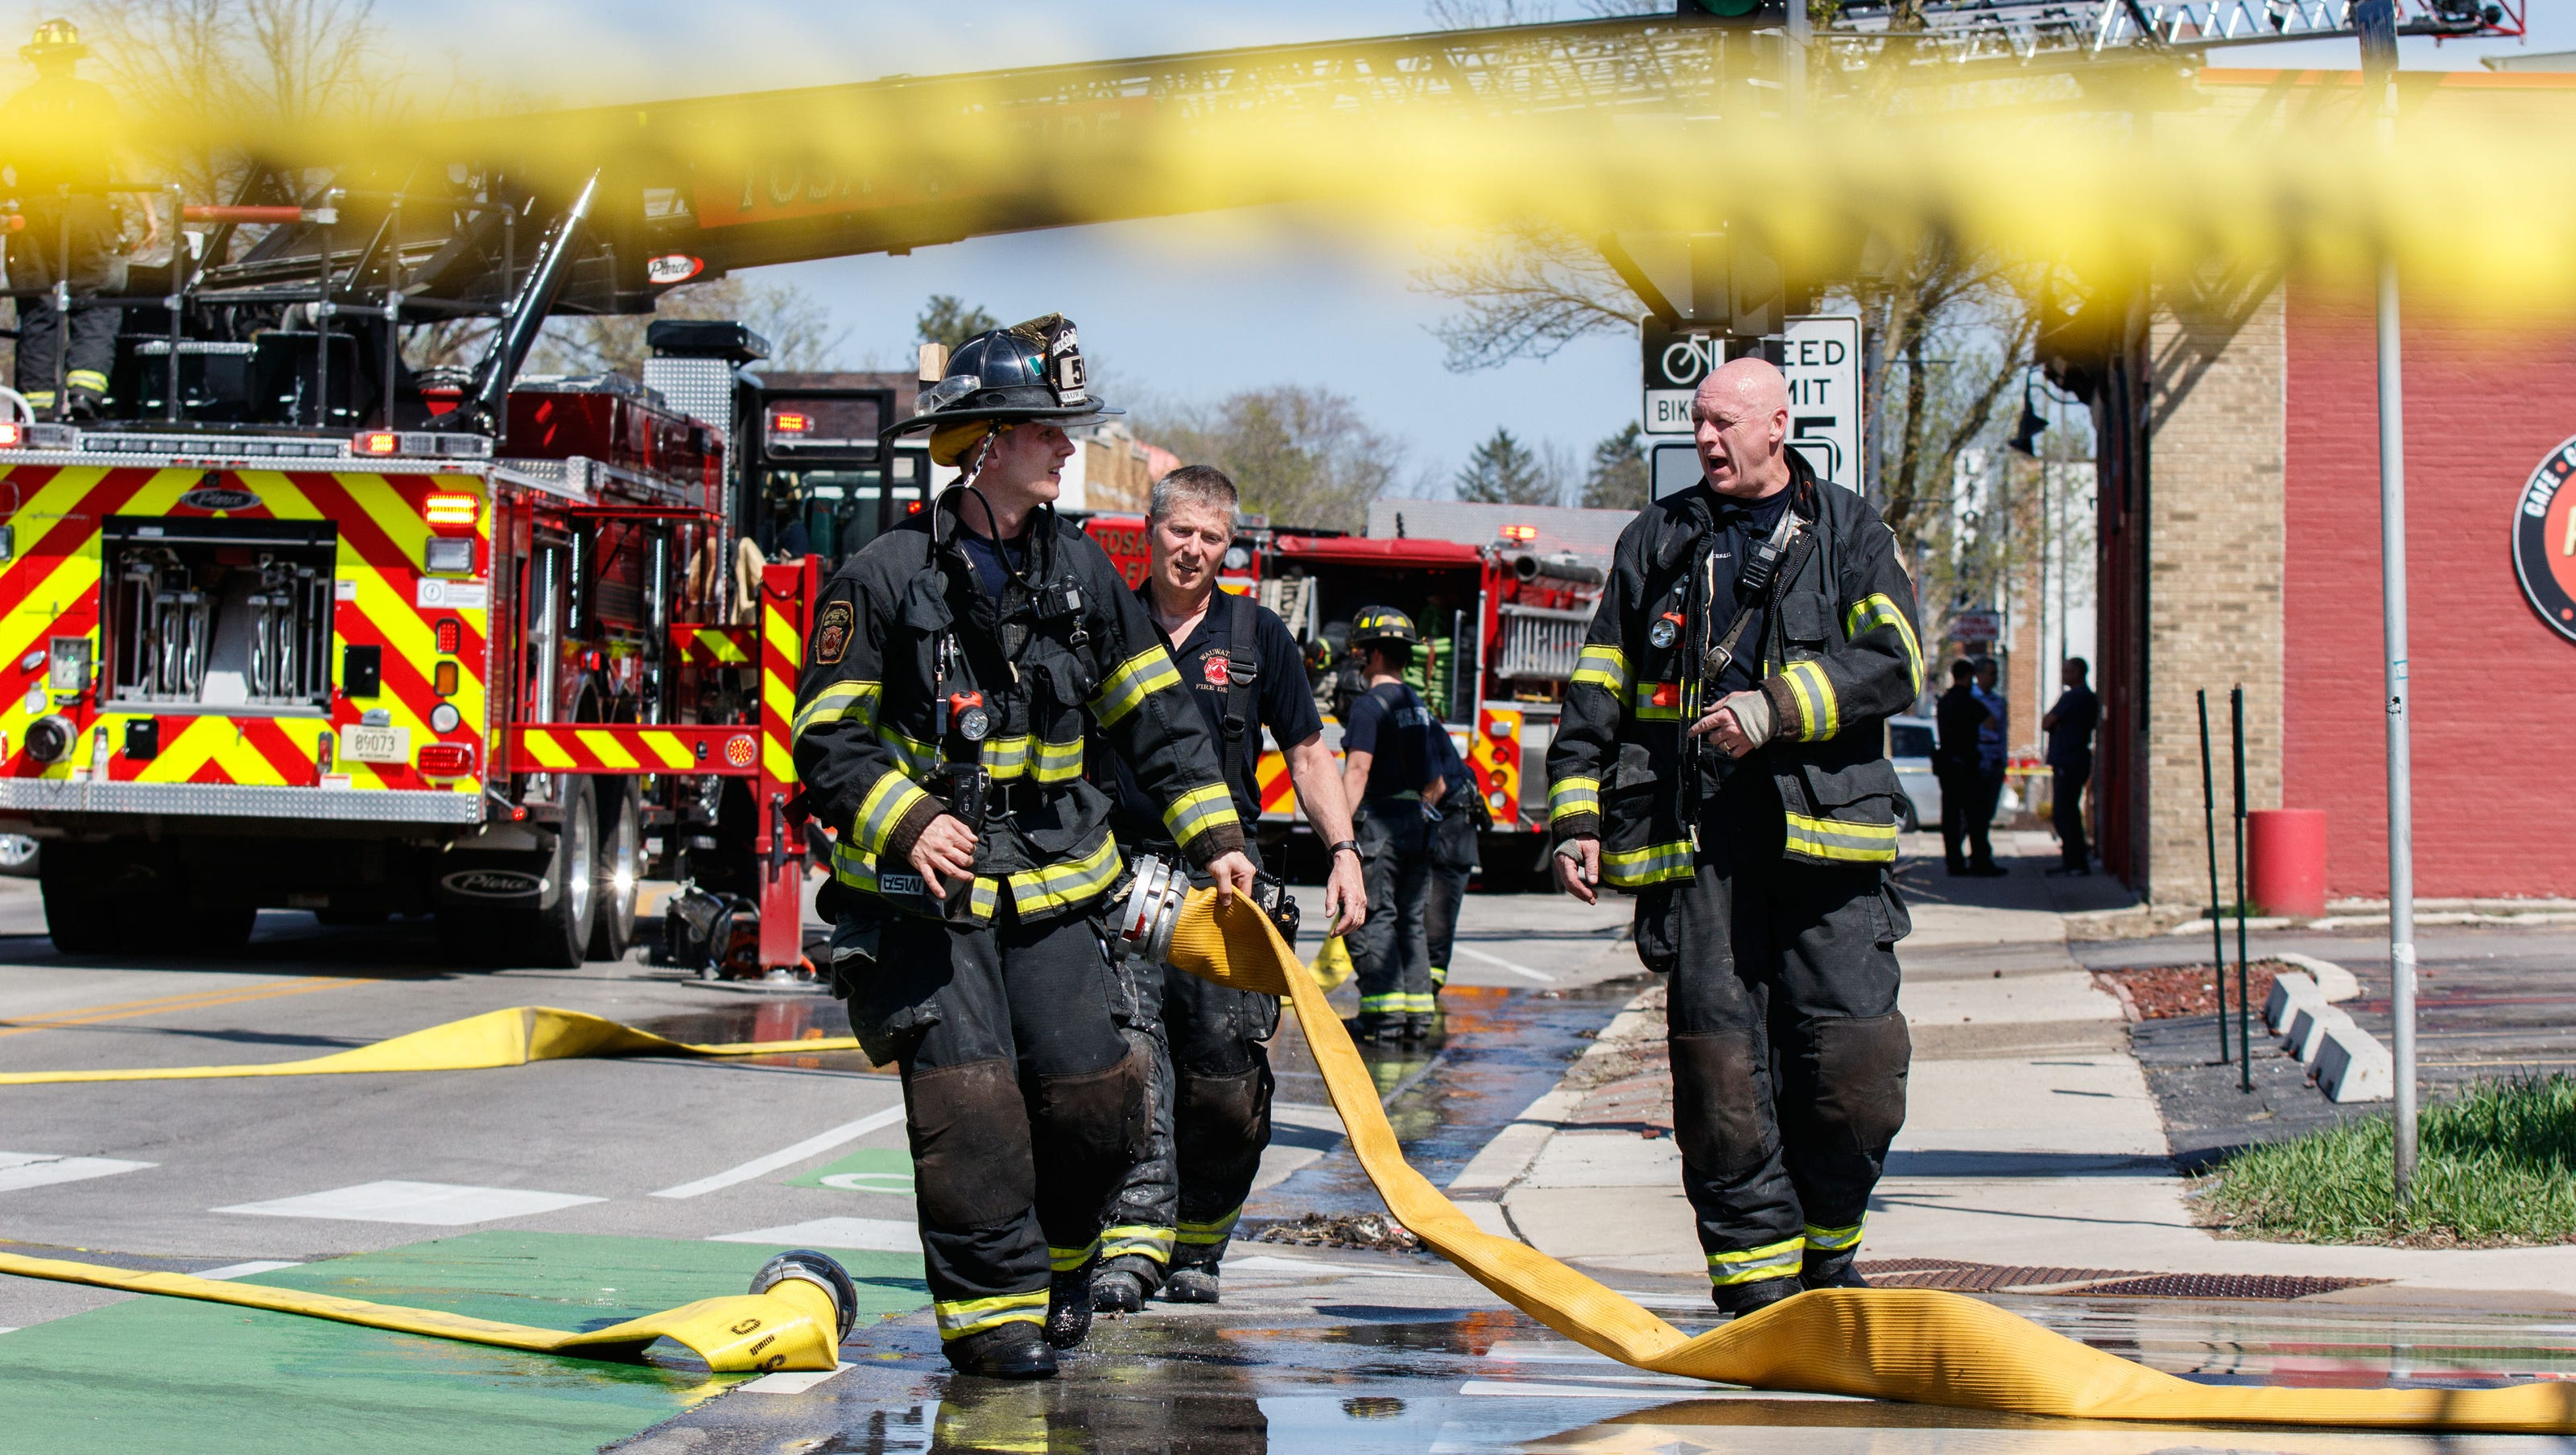 Fire Reported In Wauwatosa At Red Dot